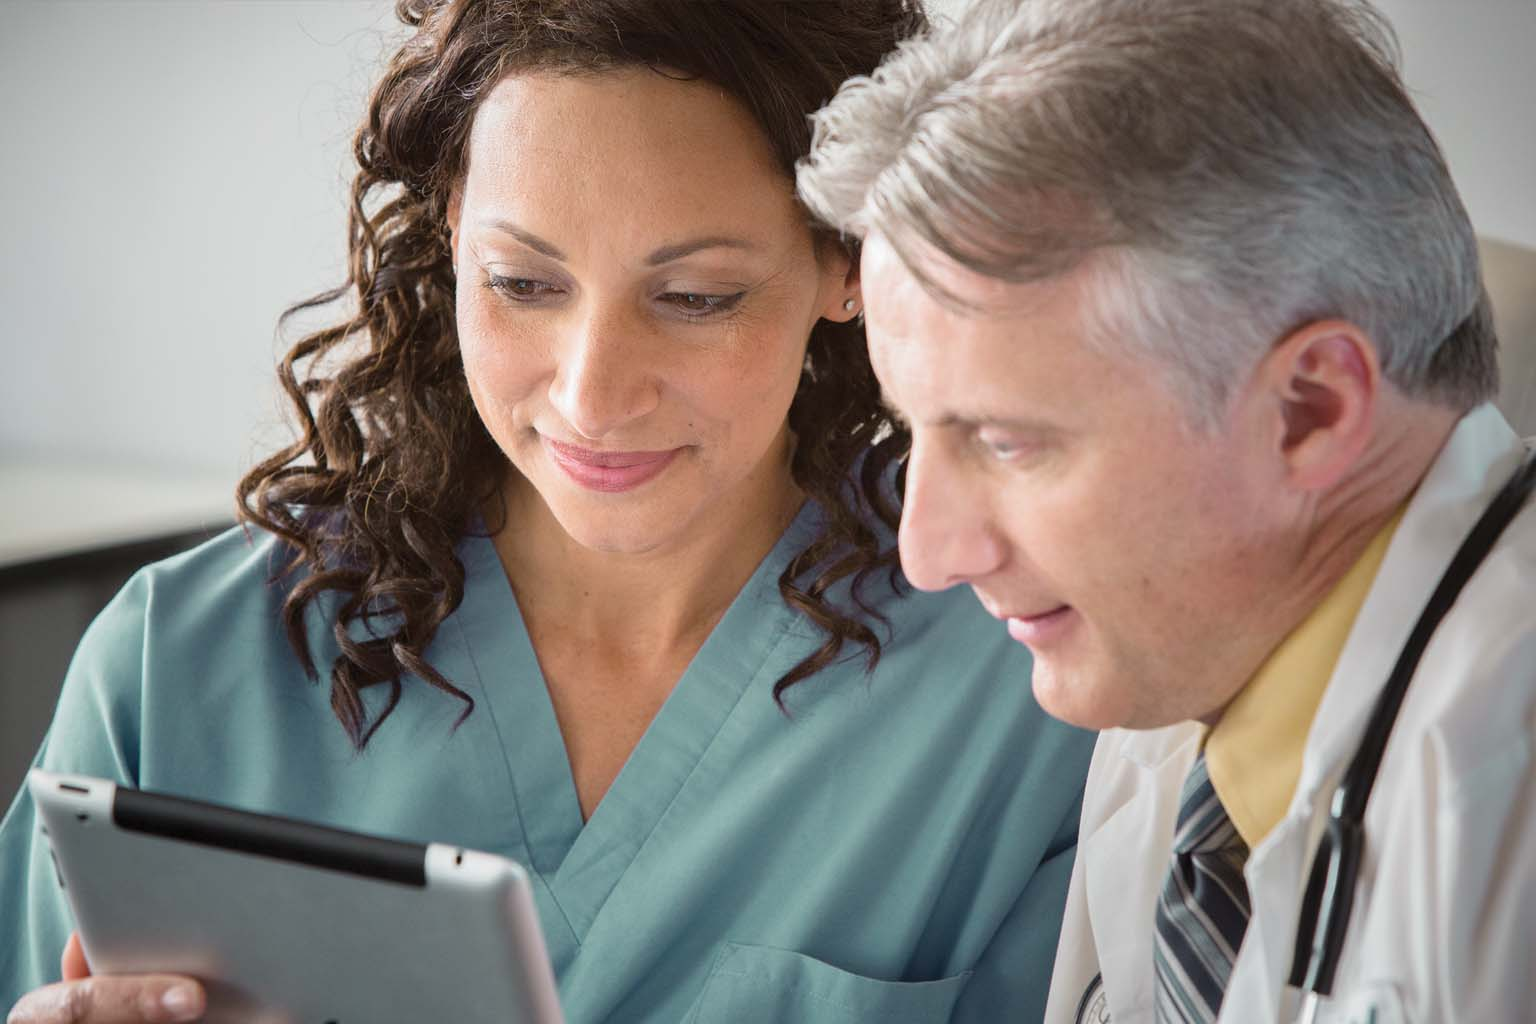 doctor and nurse looking at tablet